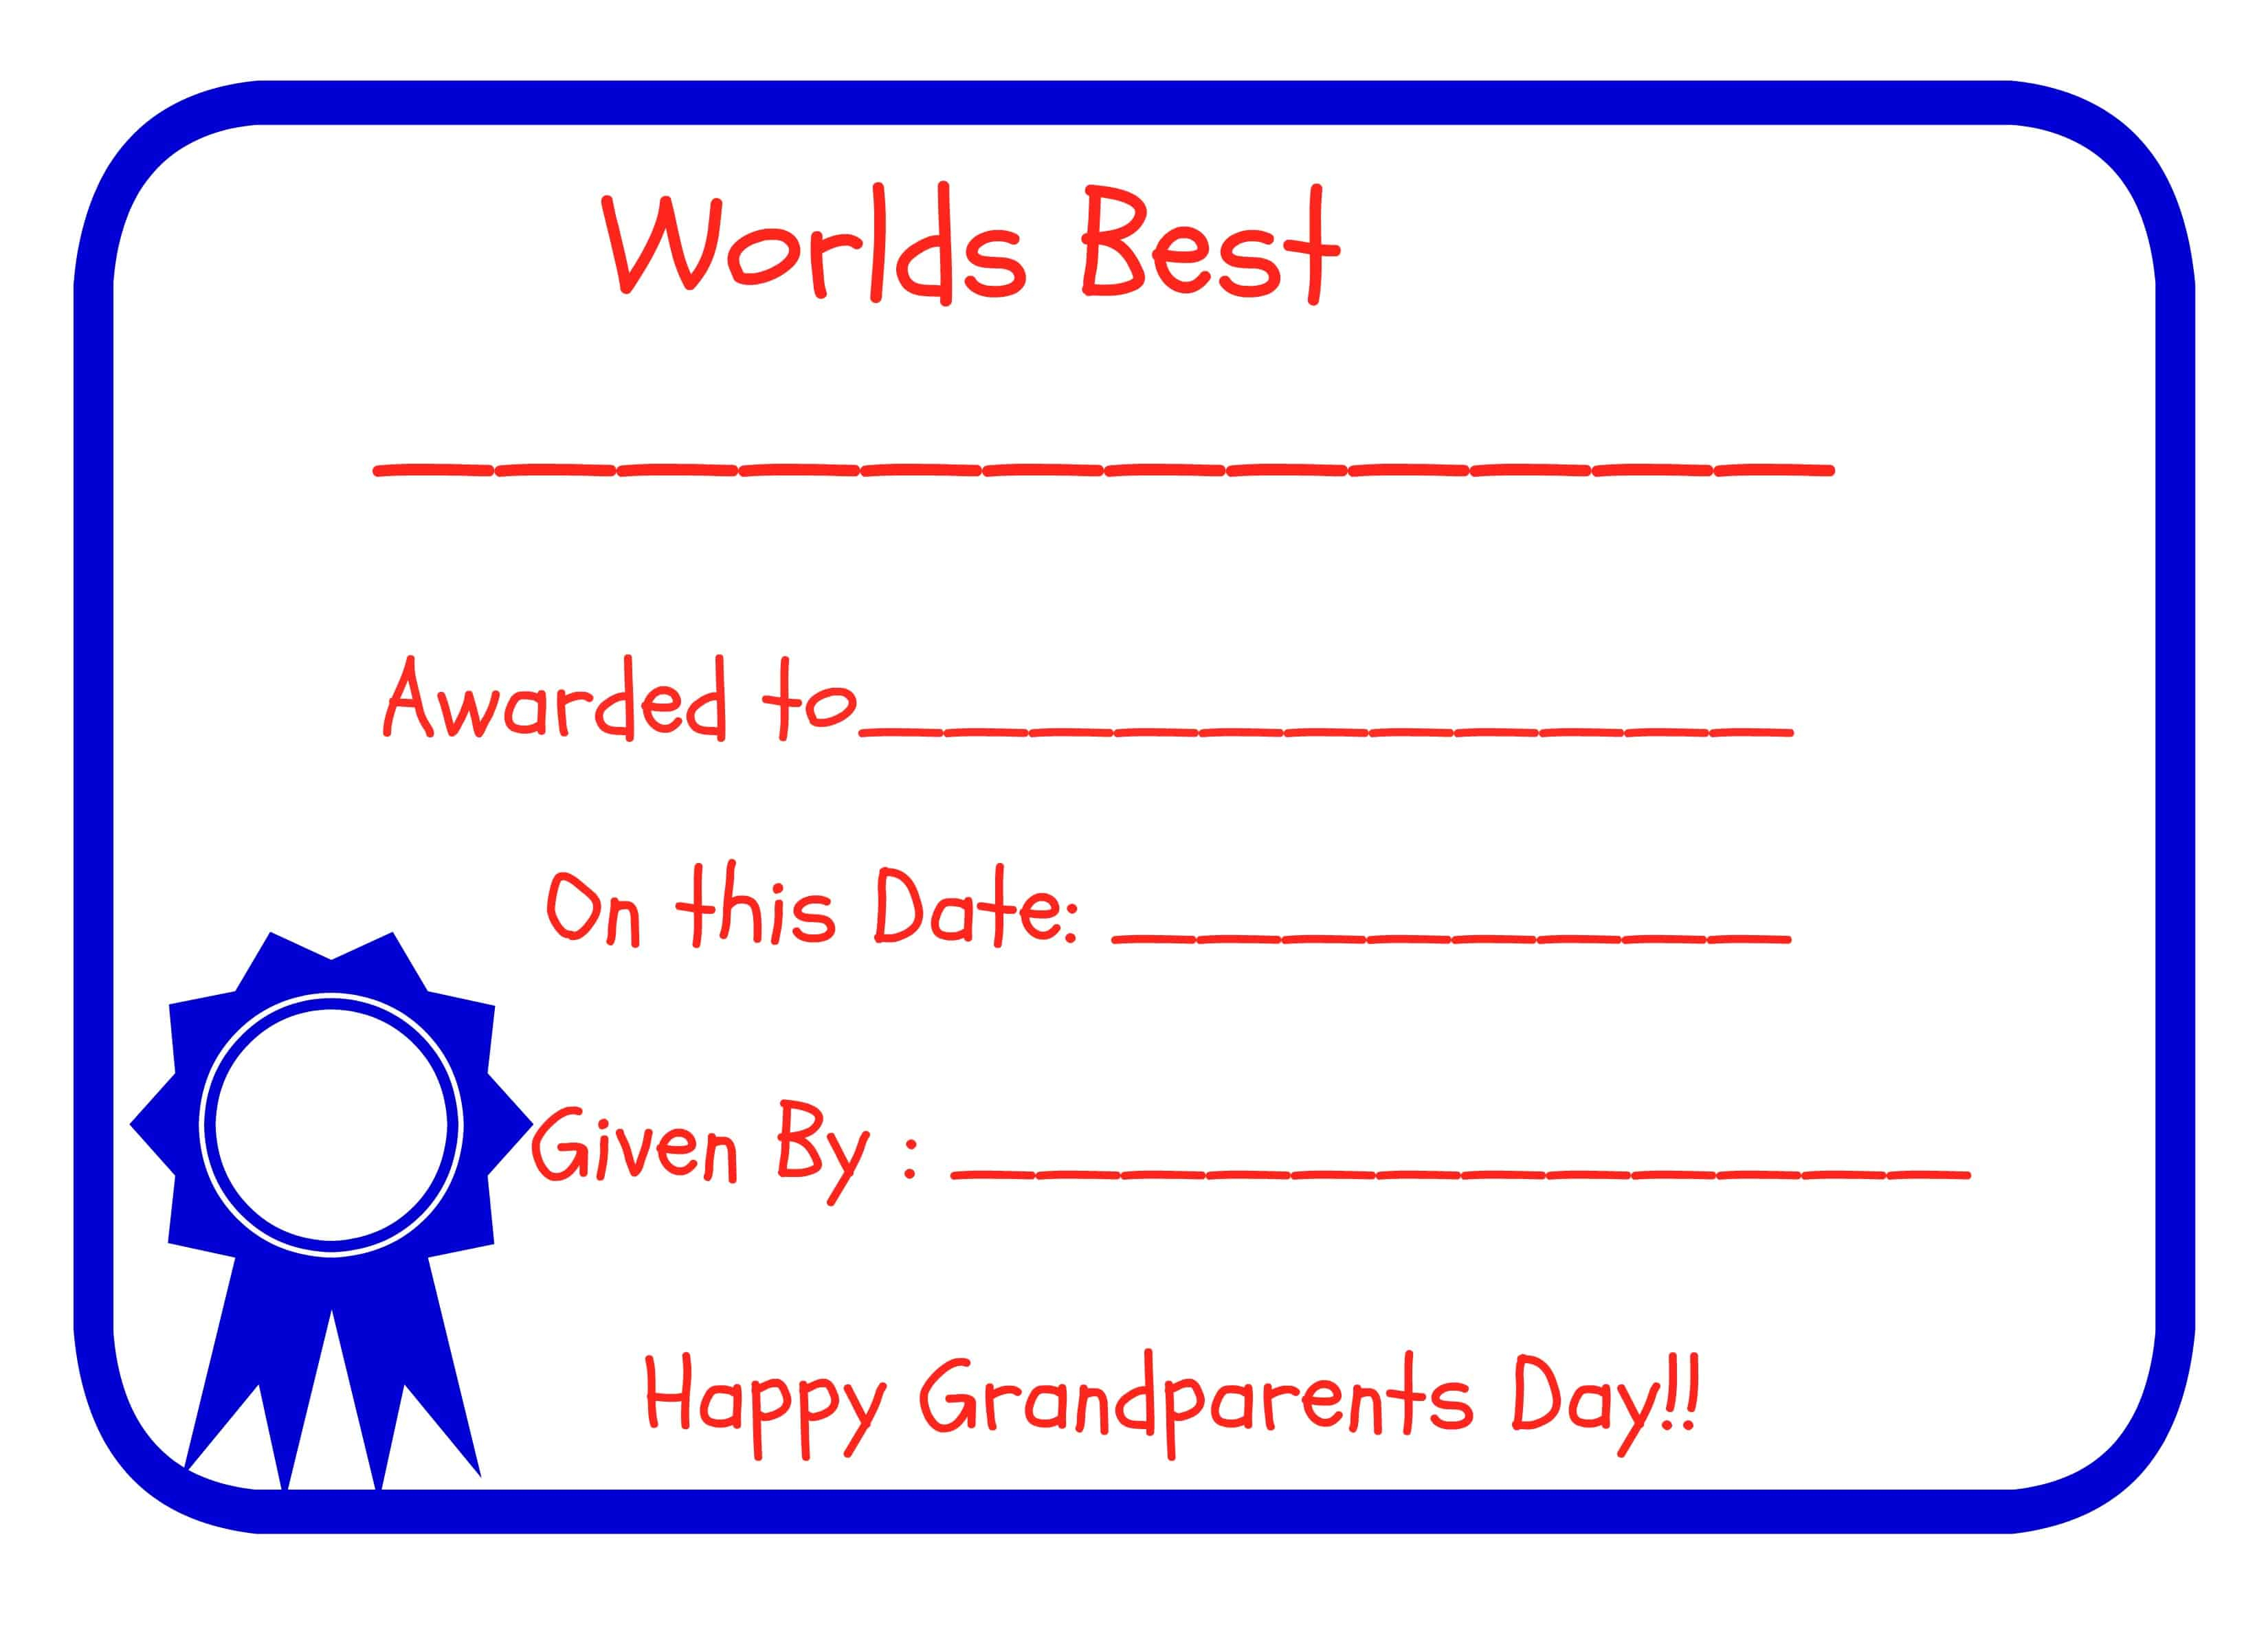 Grandparents Day - Free Printables! - Grandparents Certificate Free Printable